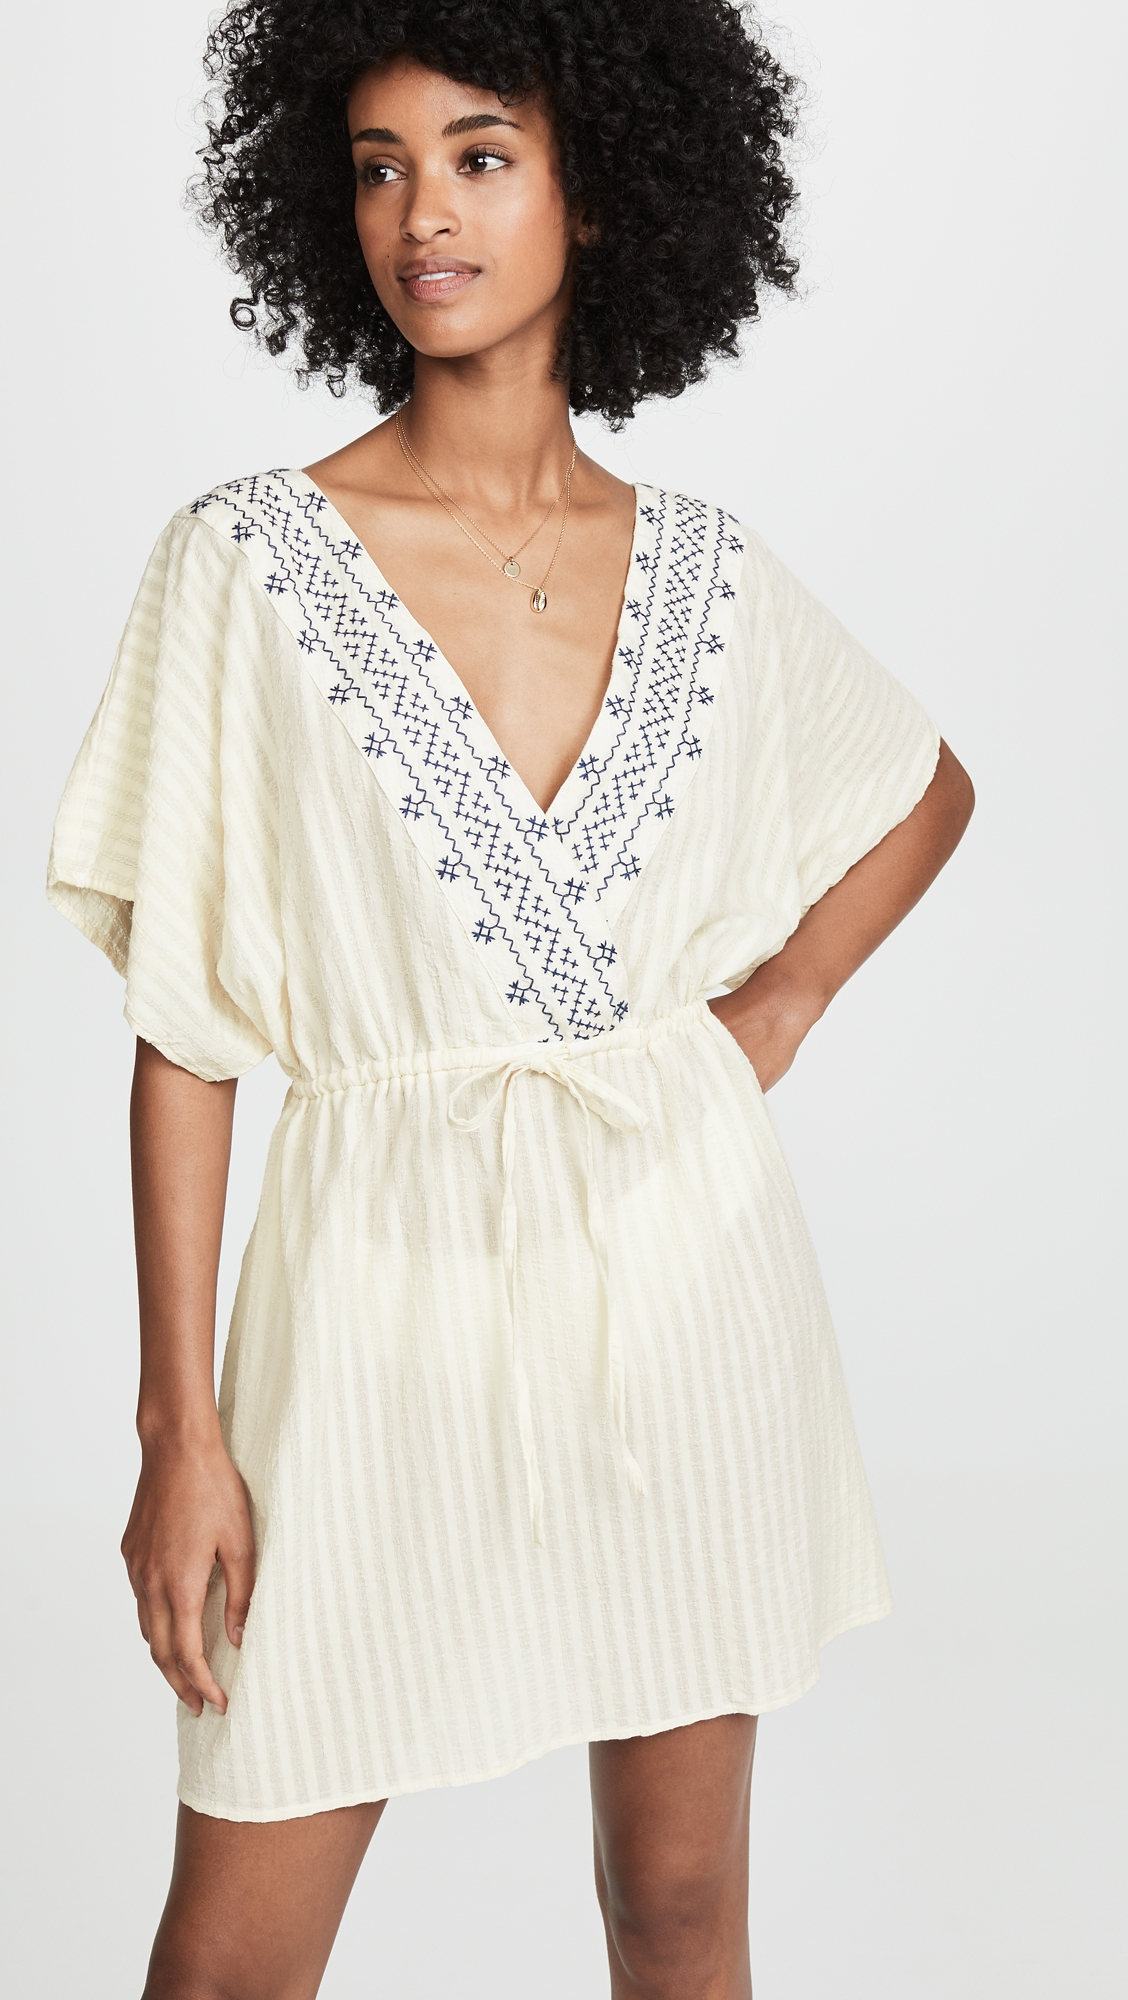 b35cd5588b817 Madewell Embroidered Tie Back Cover-Up Dress in 2019 | Products ...